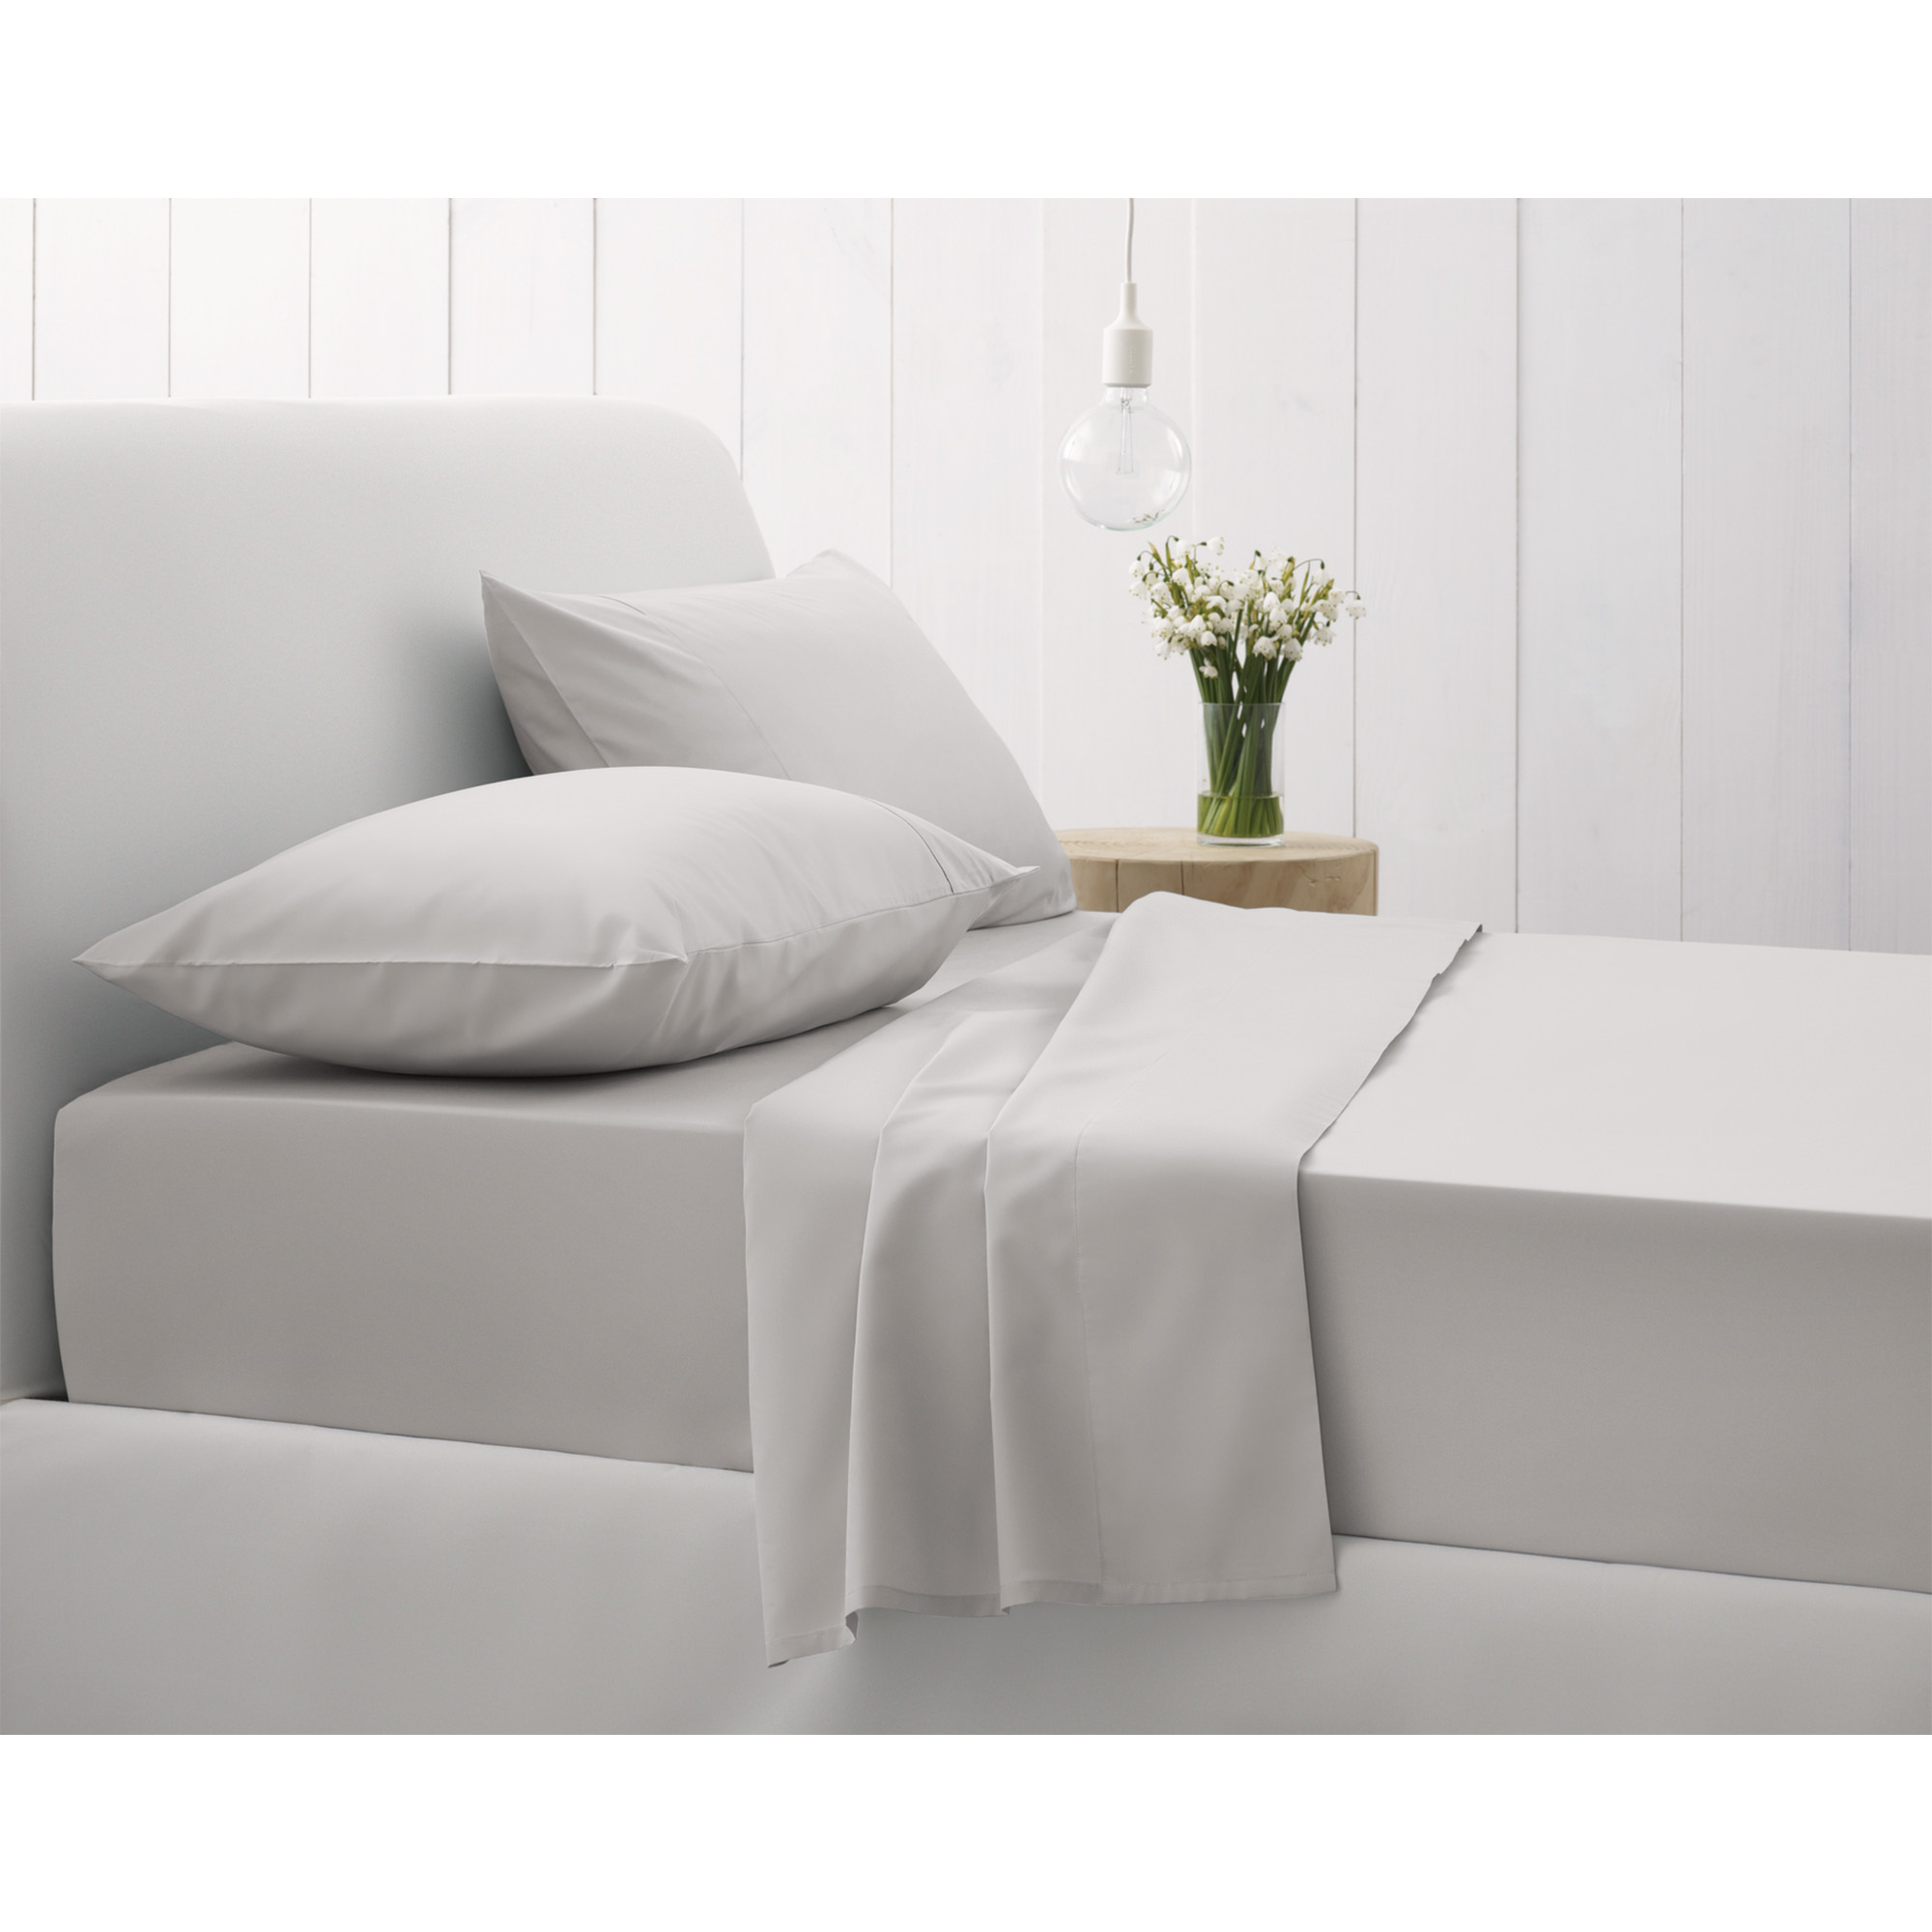 500TC FITTED SHEET SUPERKING SILVER